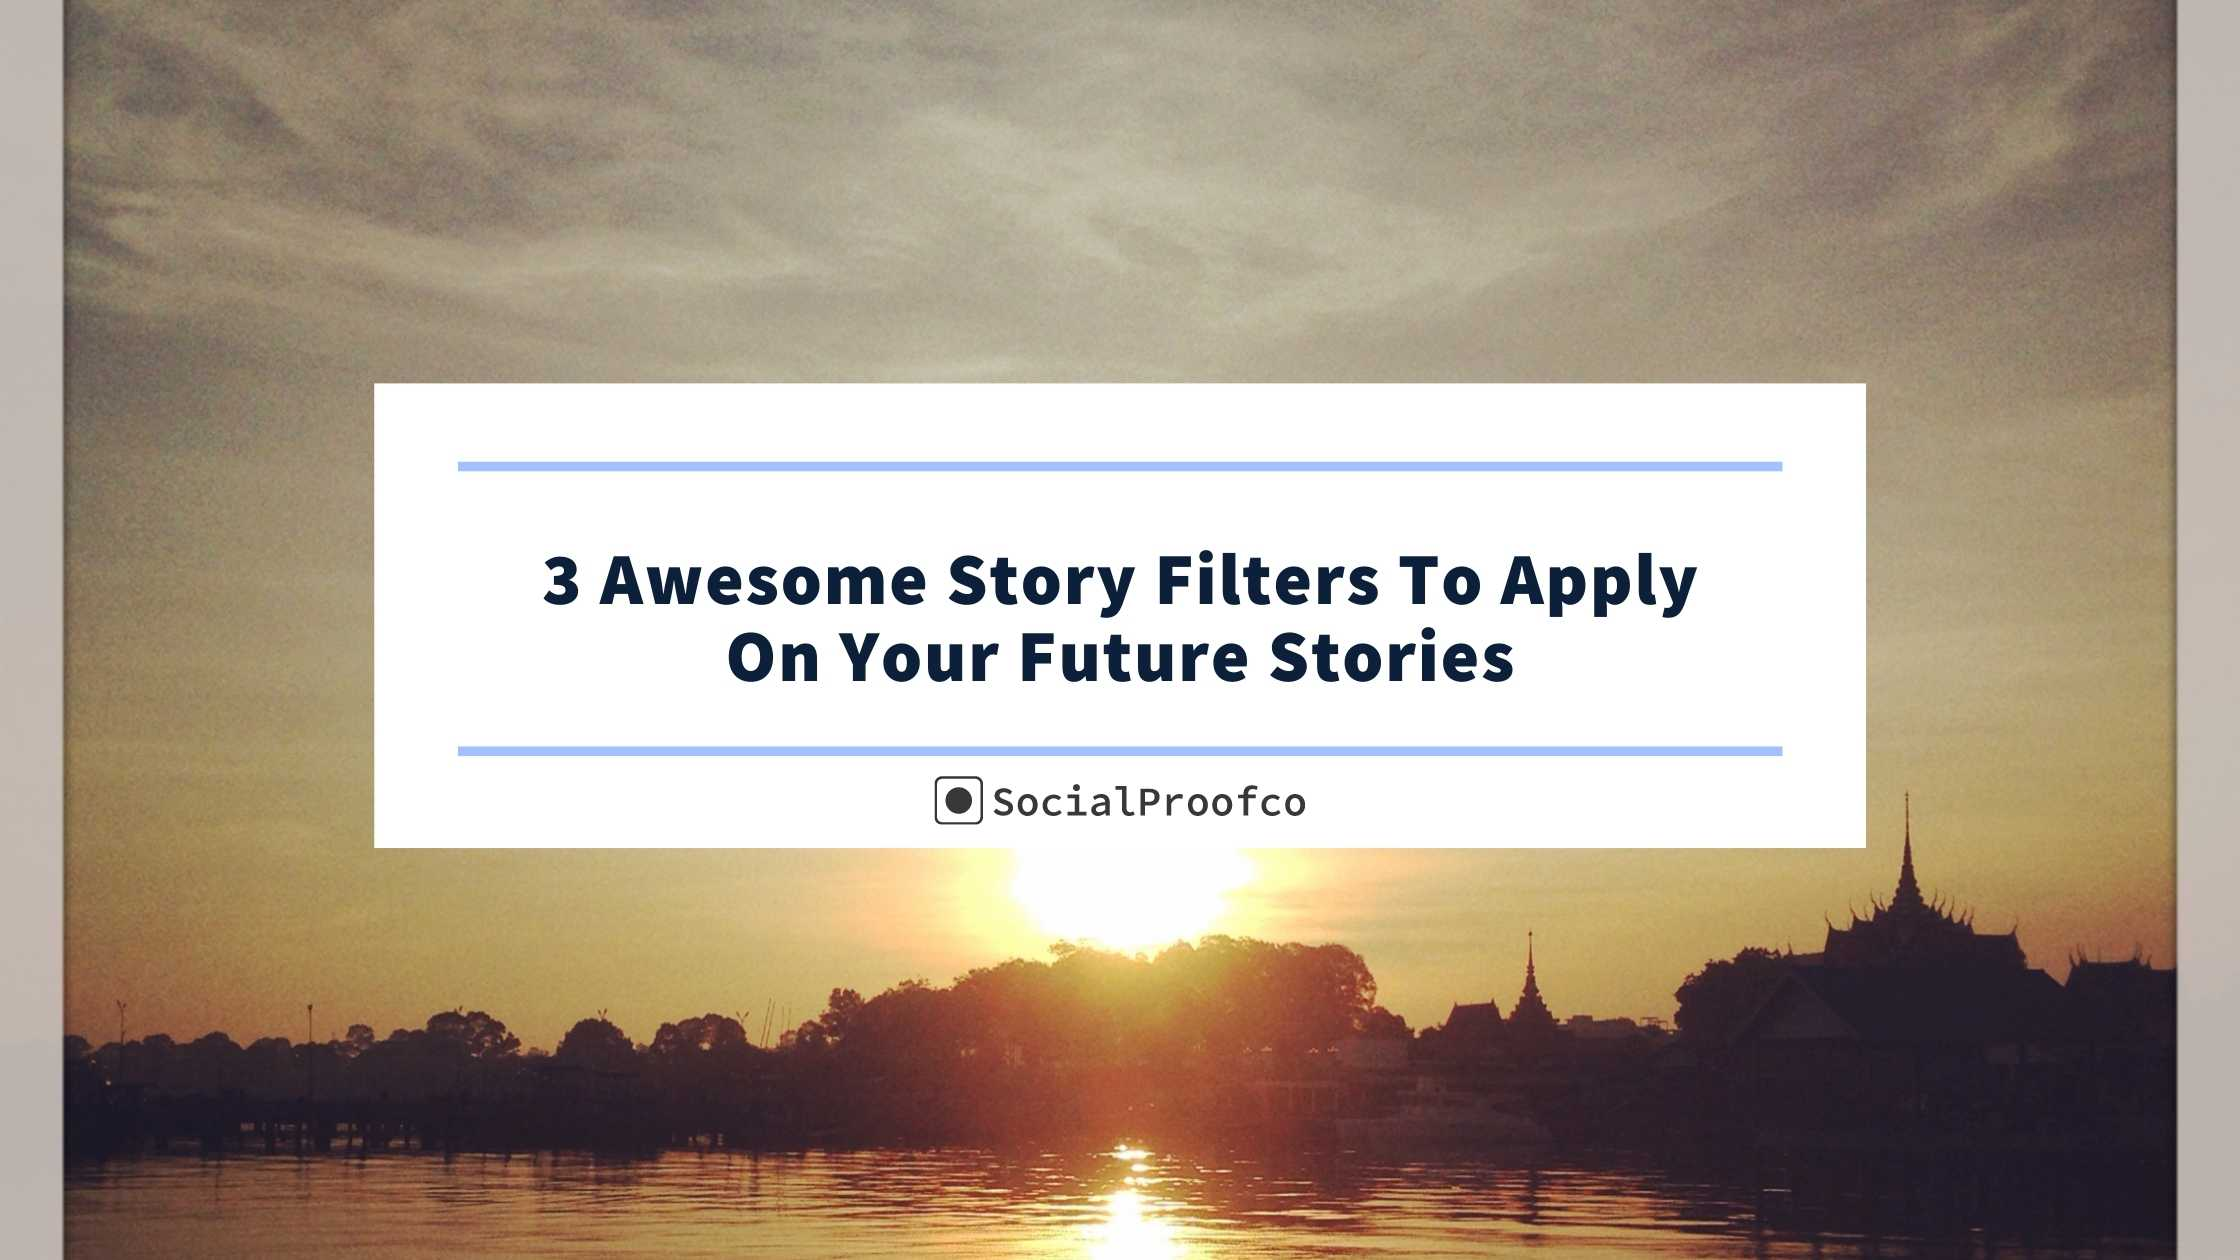 Awesome Story Filters